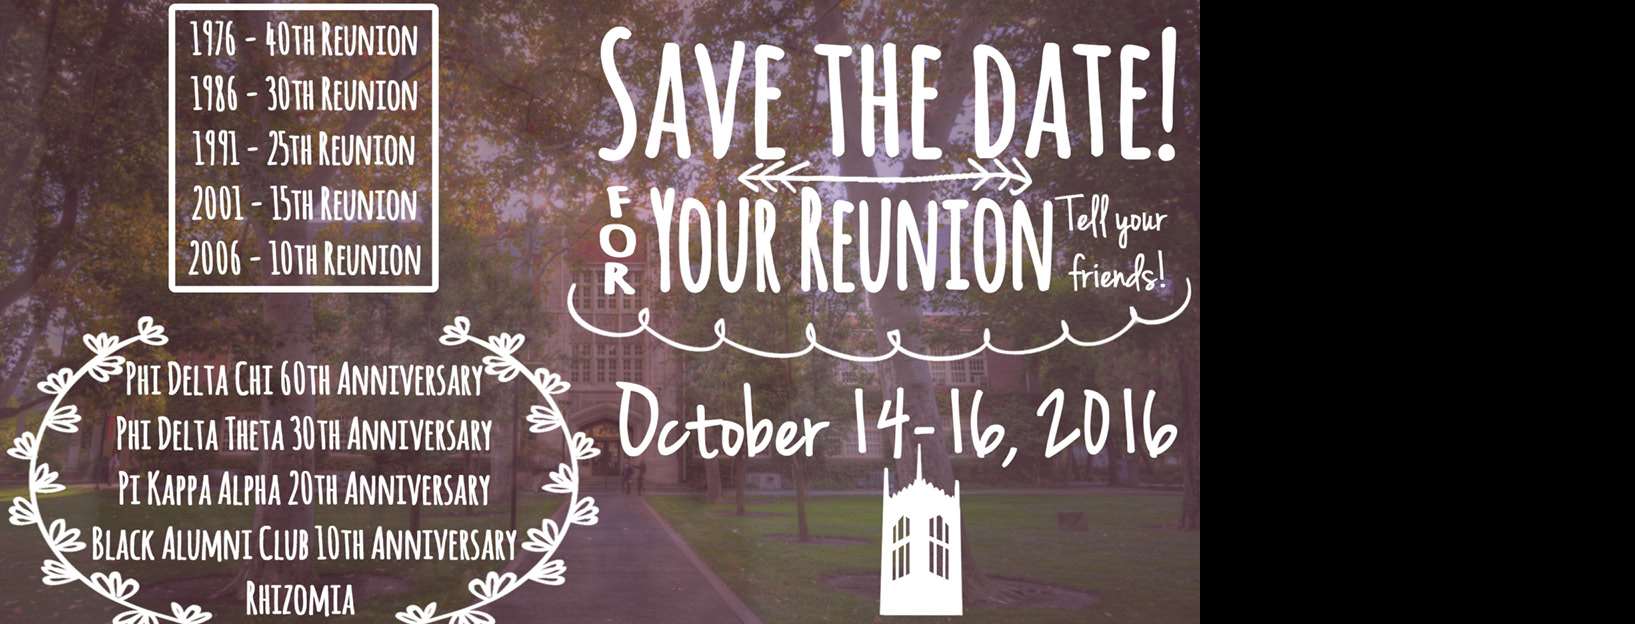 Reunions at Homecoming 2016